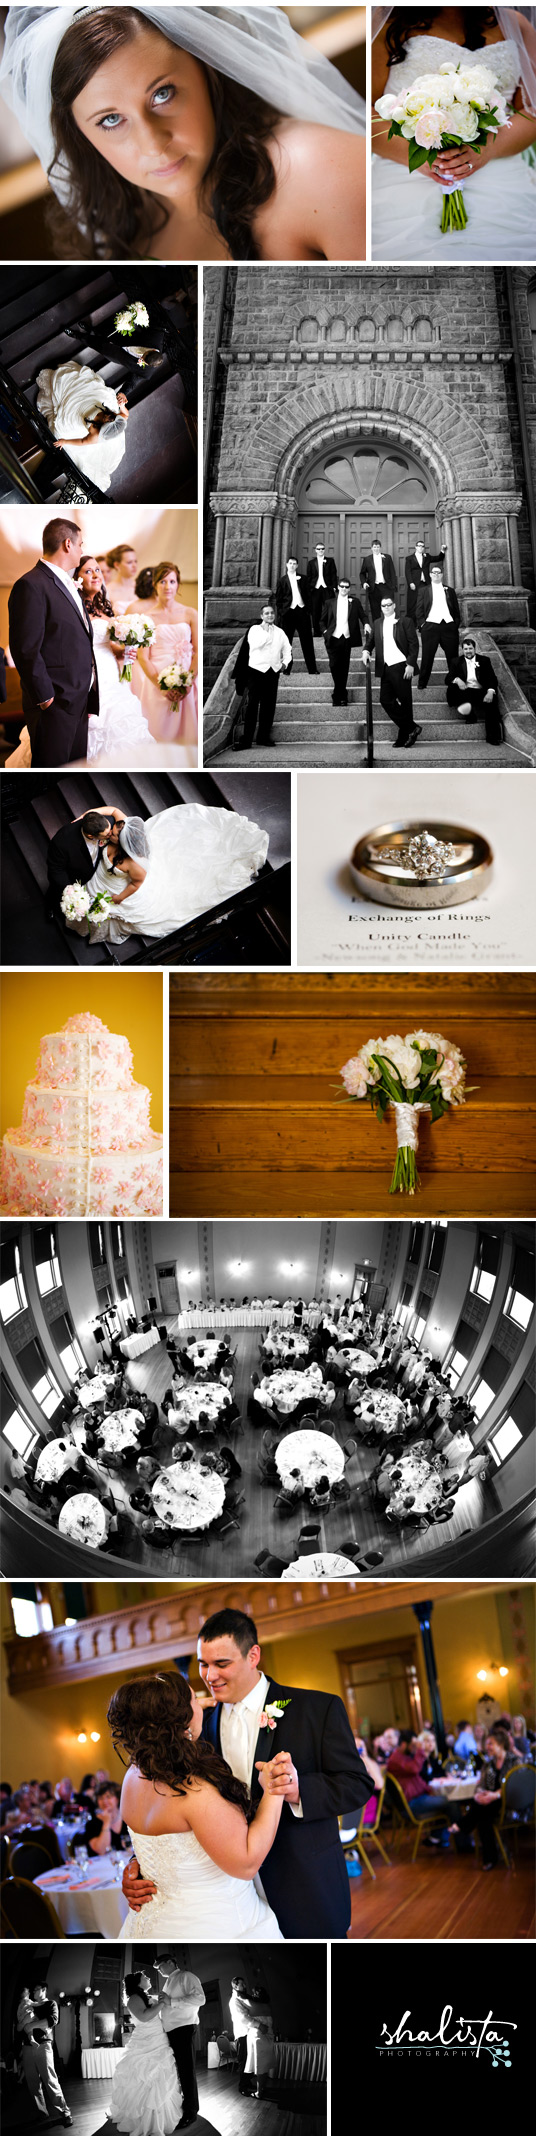 Wedding Photographers in South Dakota